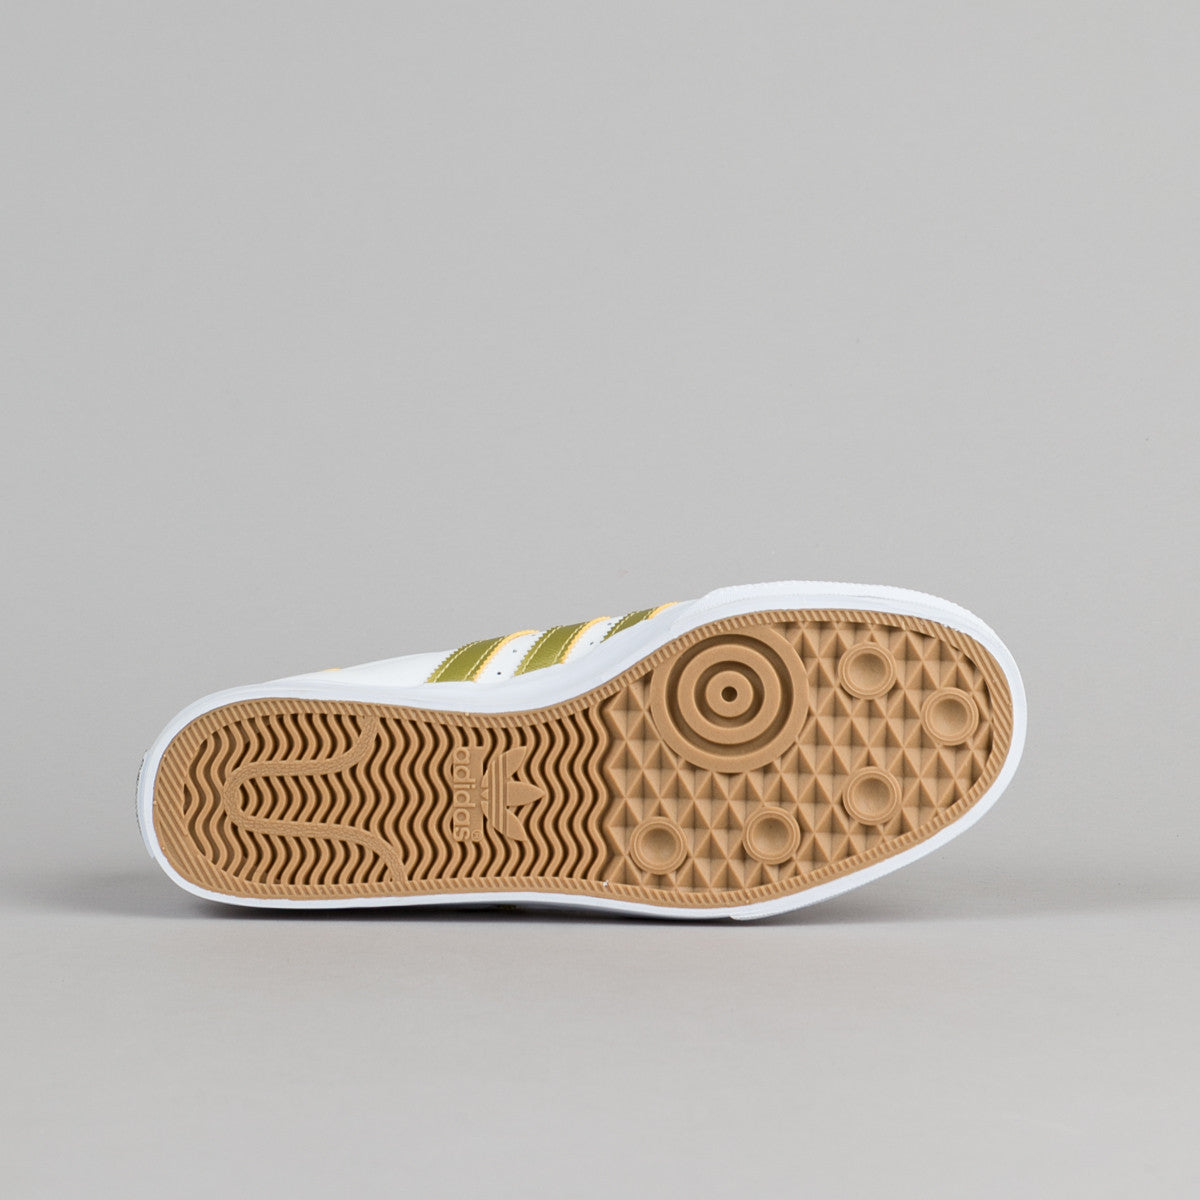 Adidas Adi-Ease Premiere Away Days Shoes - White / Gold / Gum